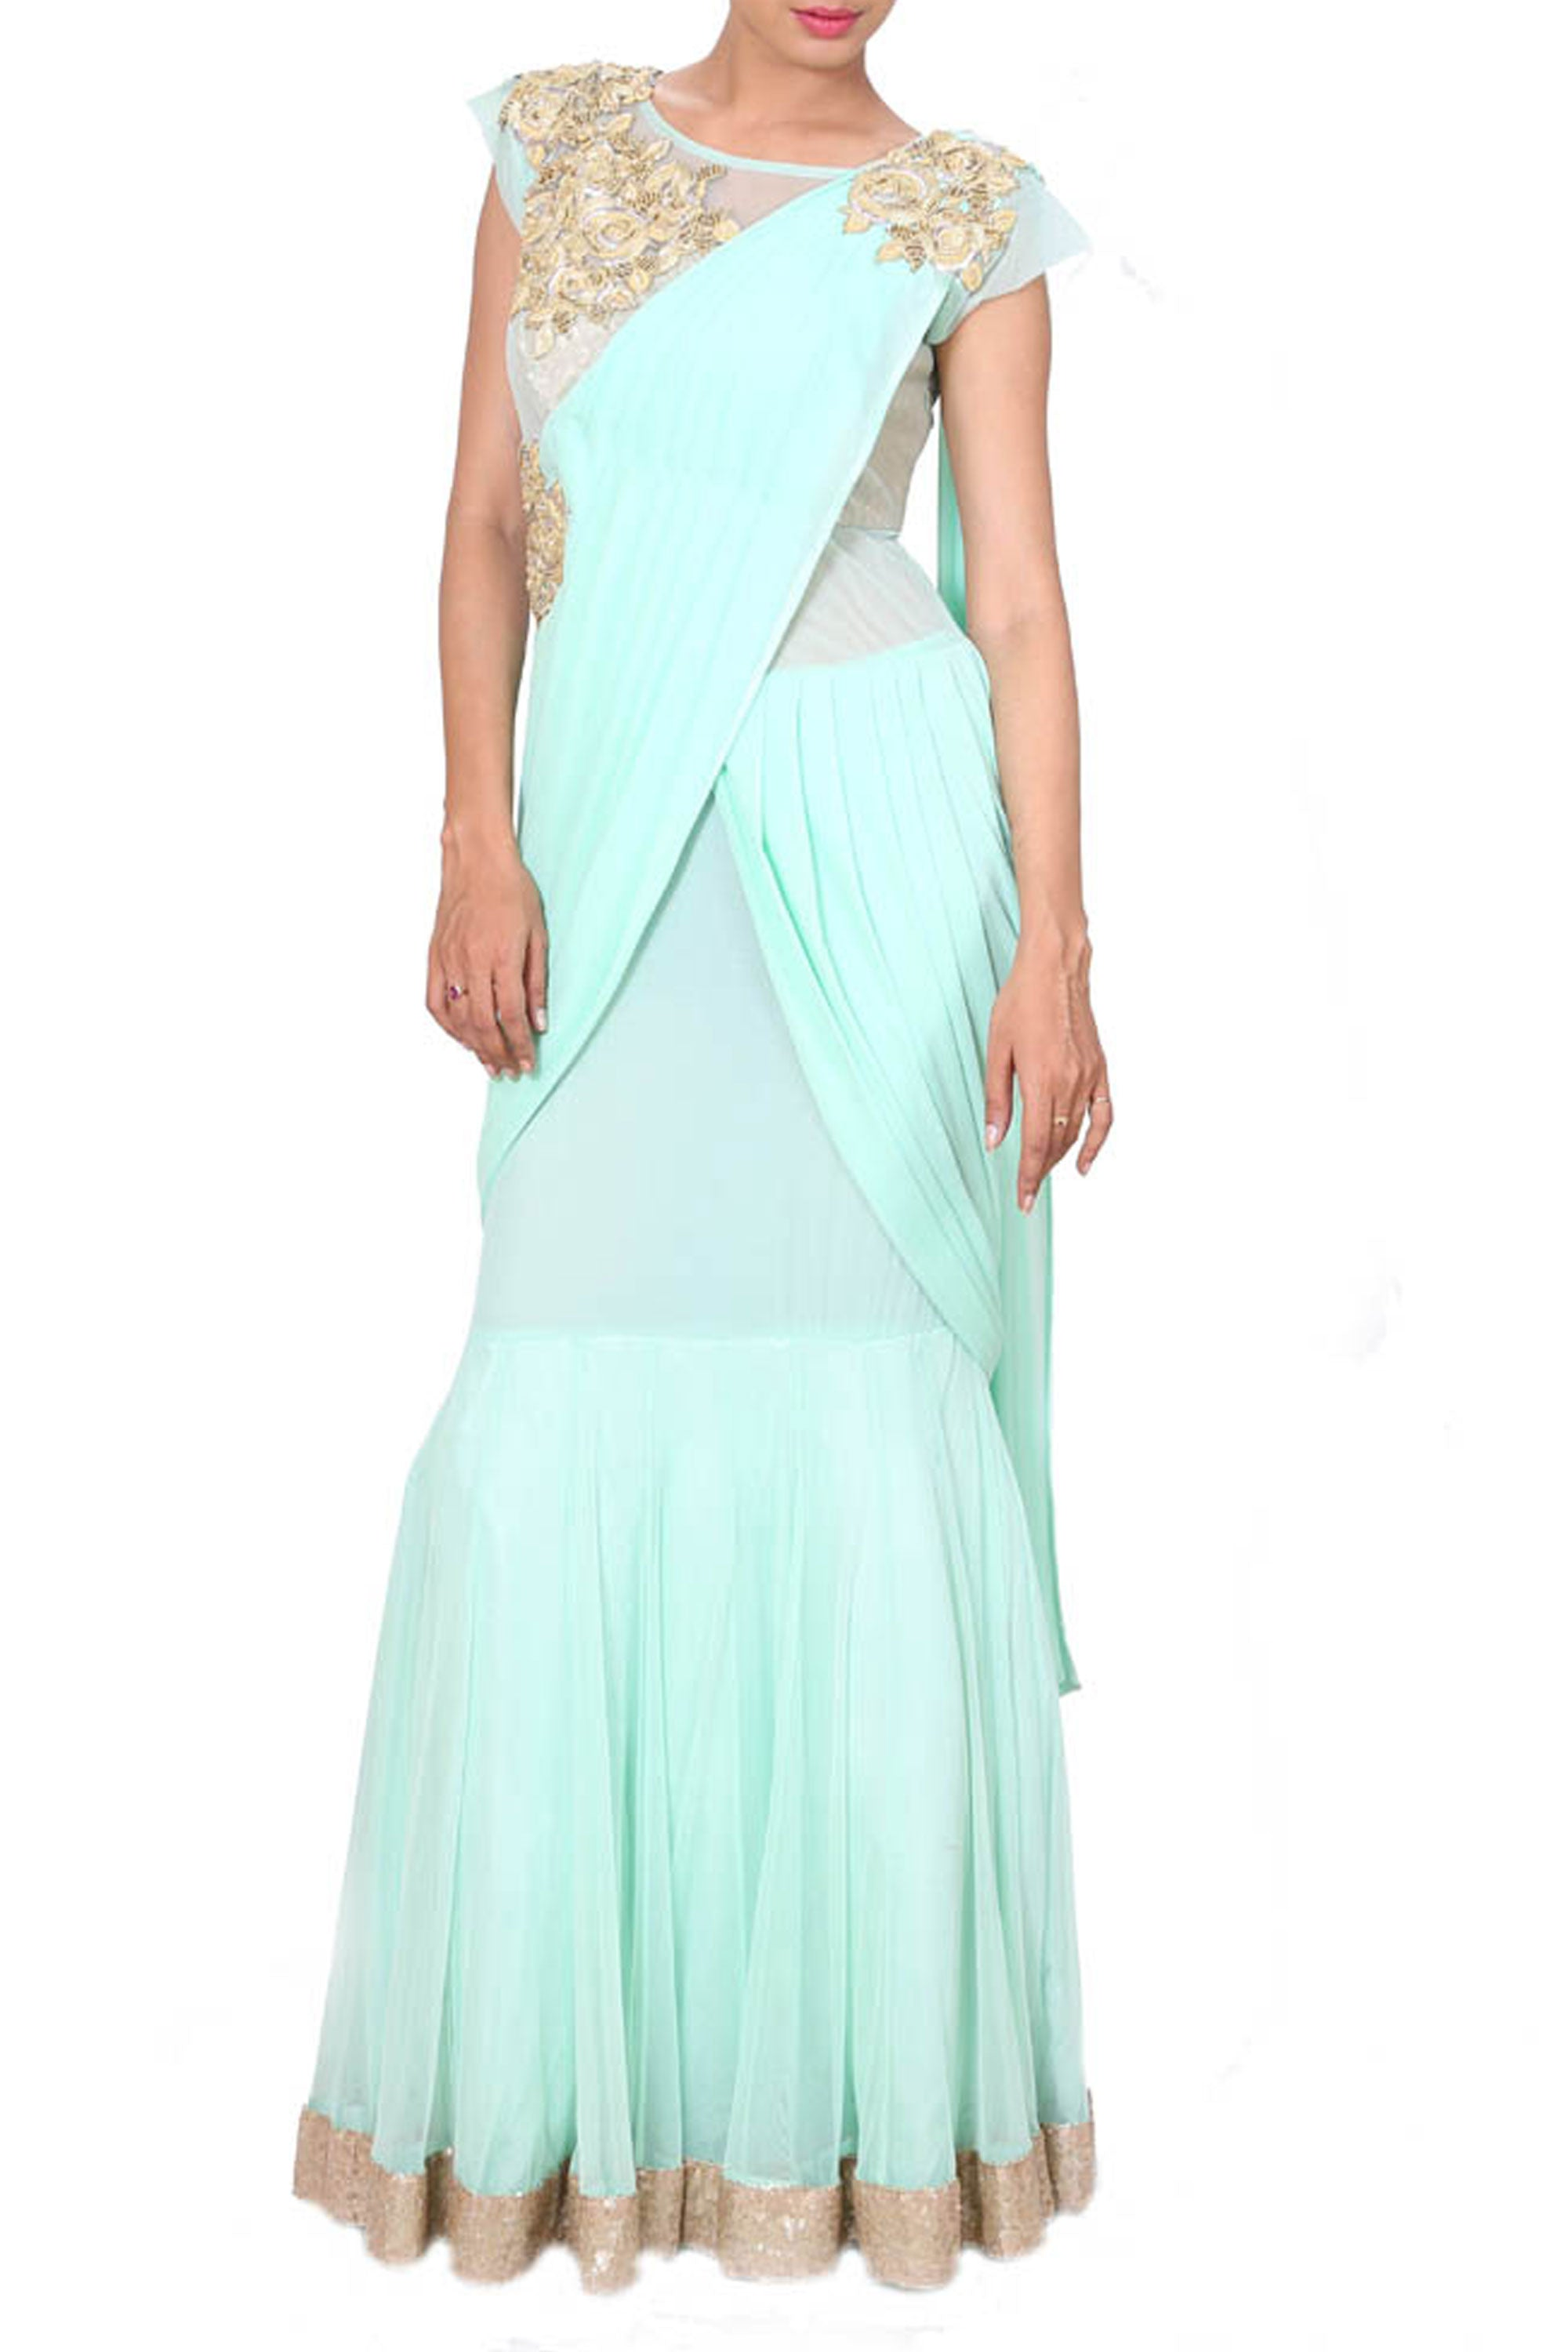 Embroidered Aqua Blue Gown In A Saree Style Drape Front